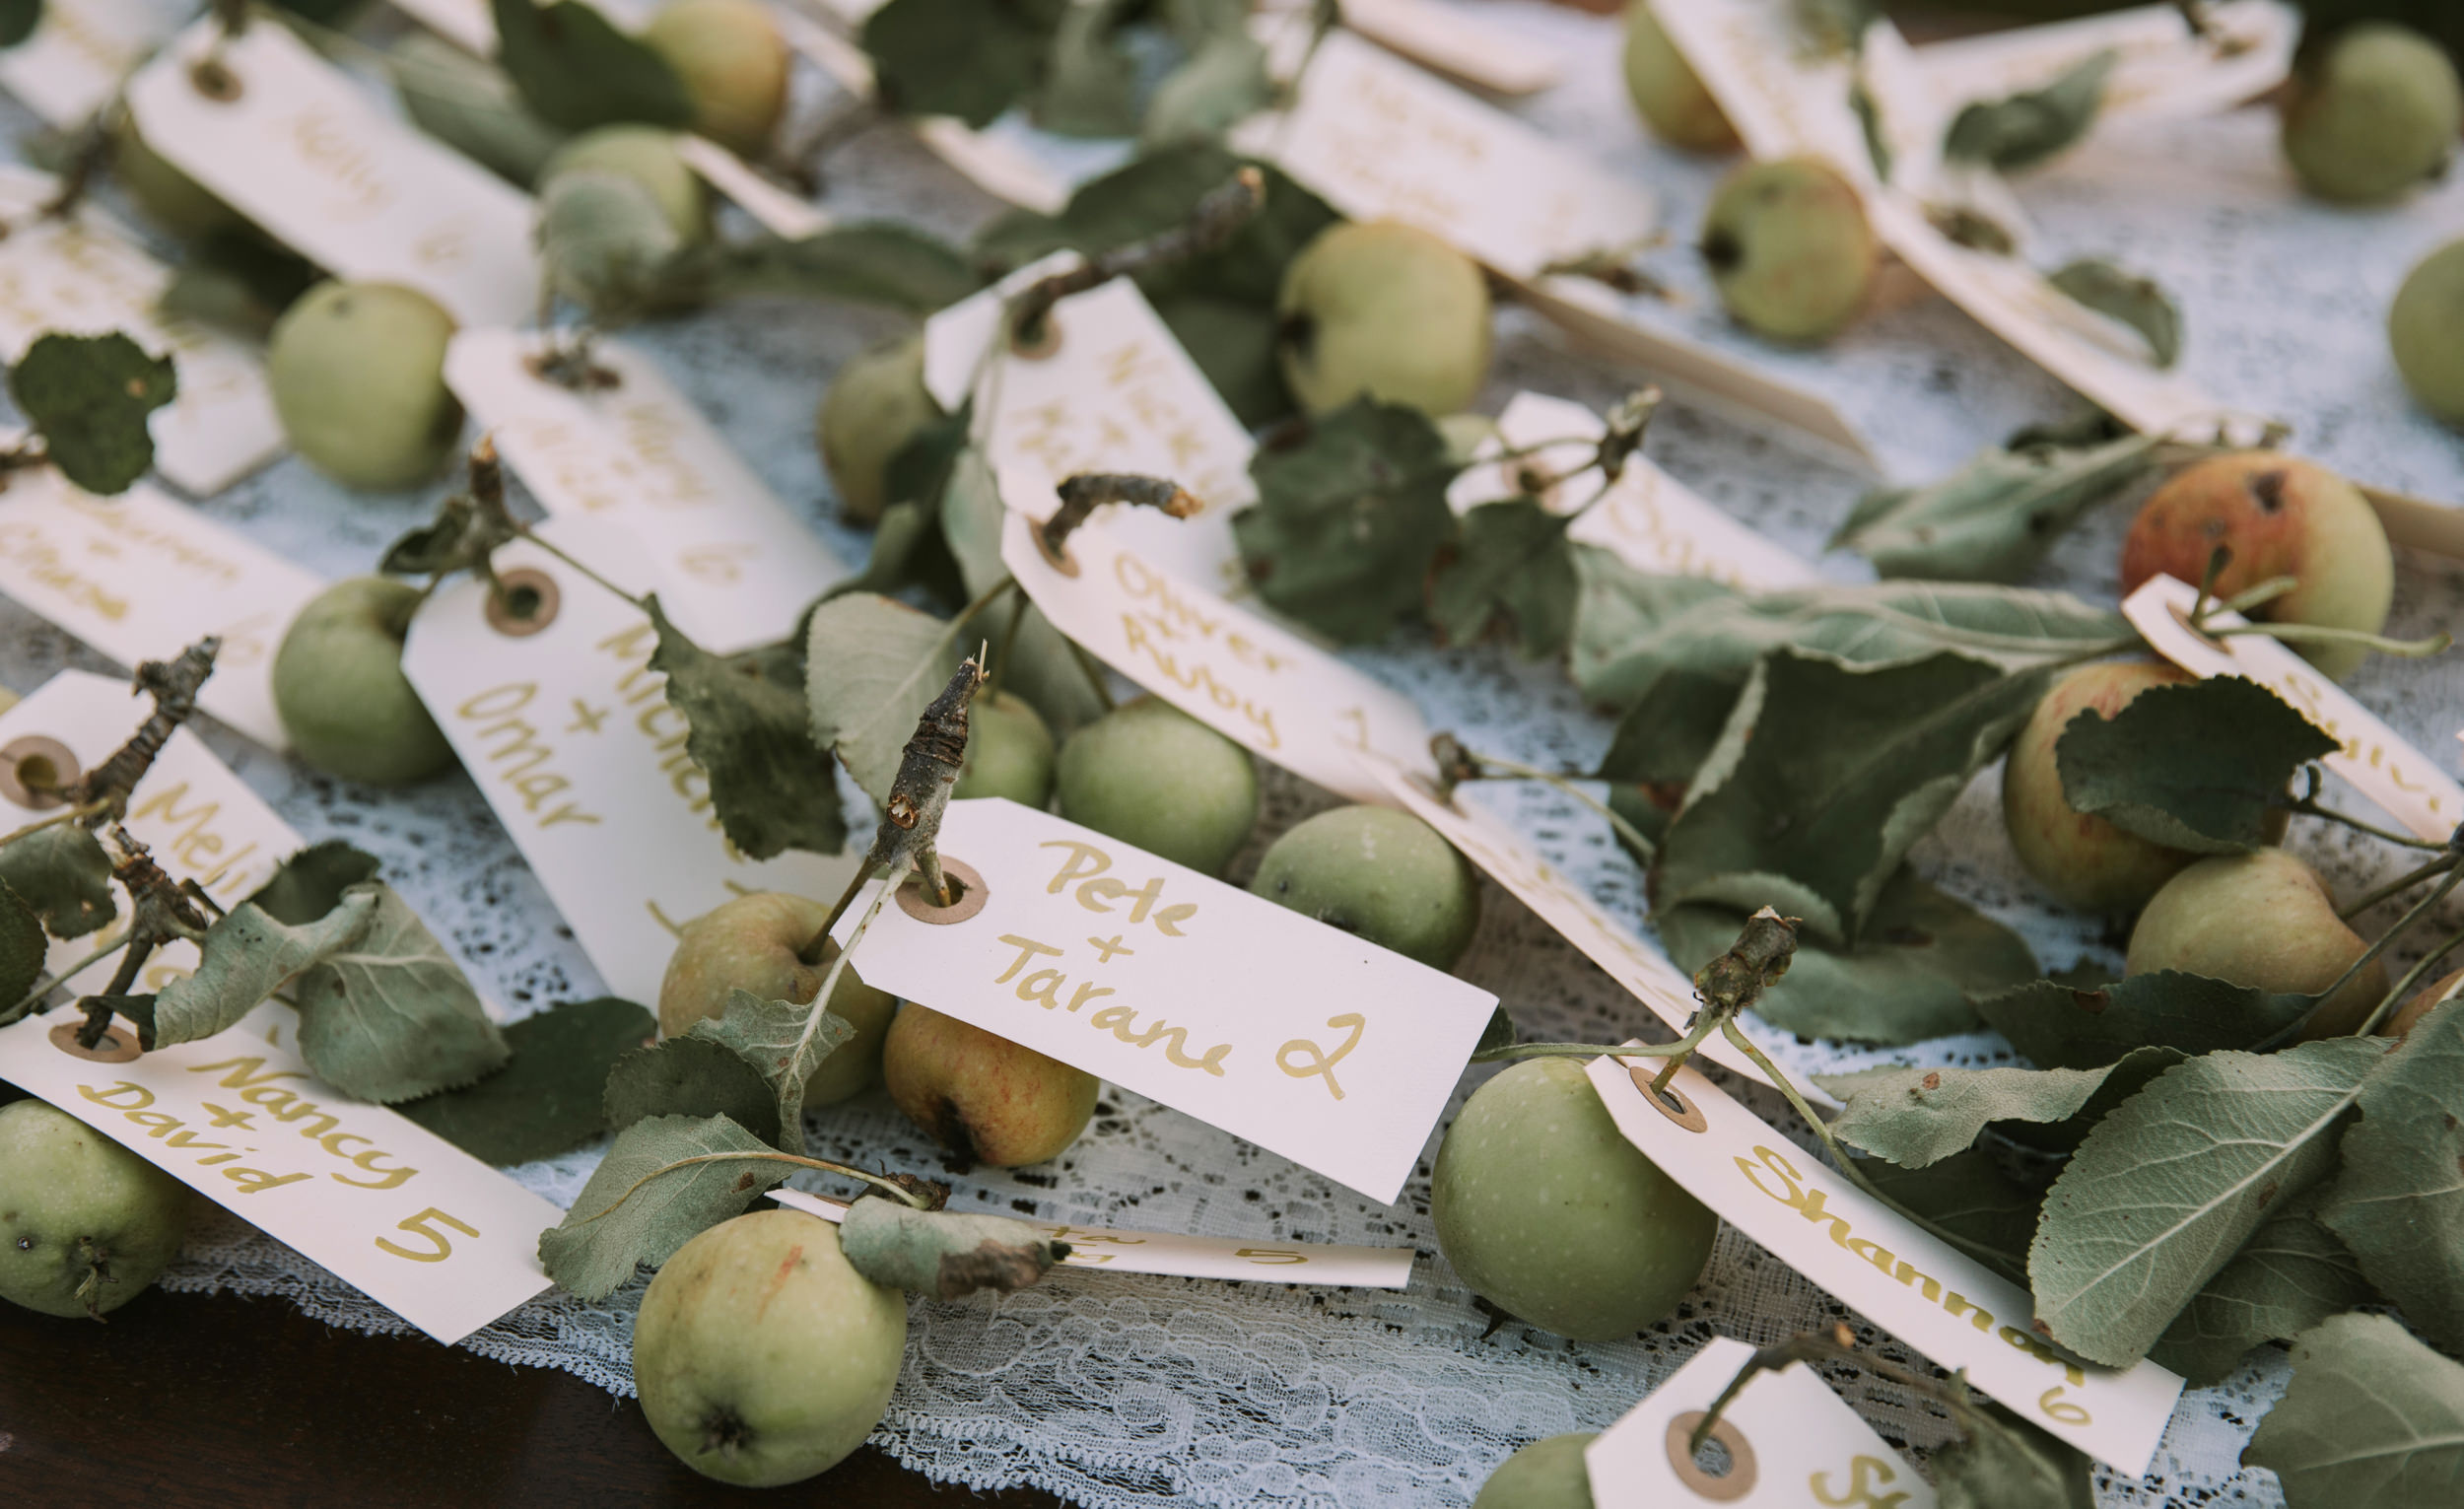 Name tags on apples at a wedding reception